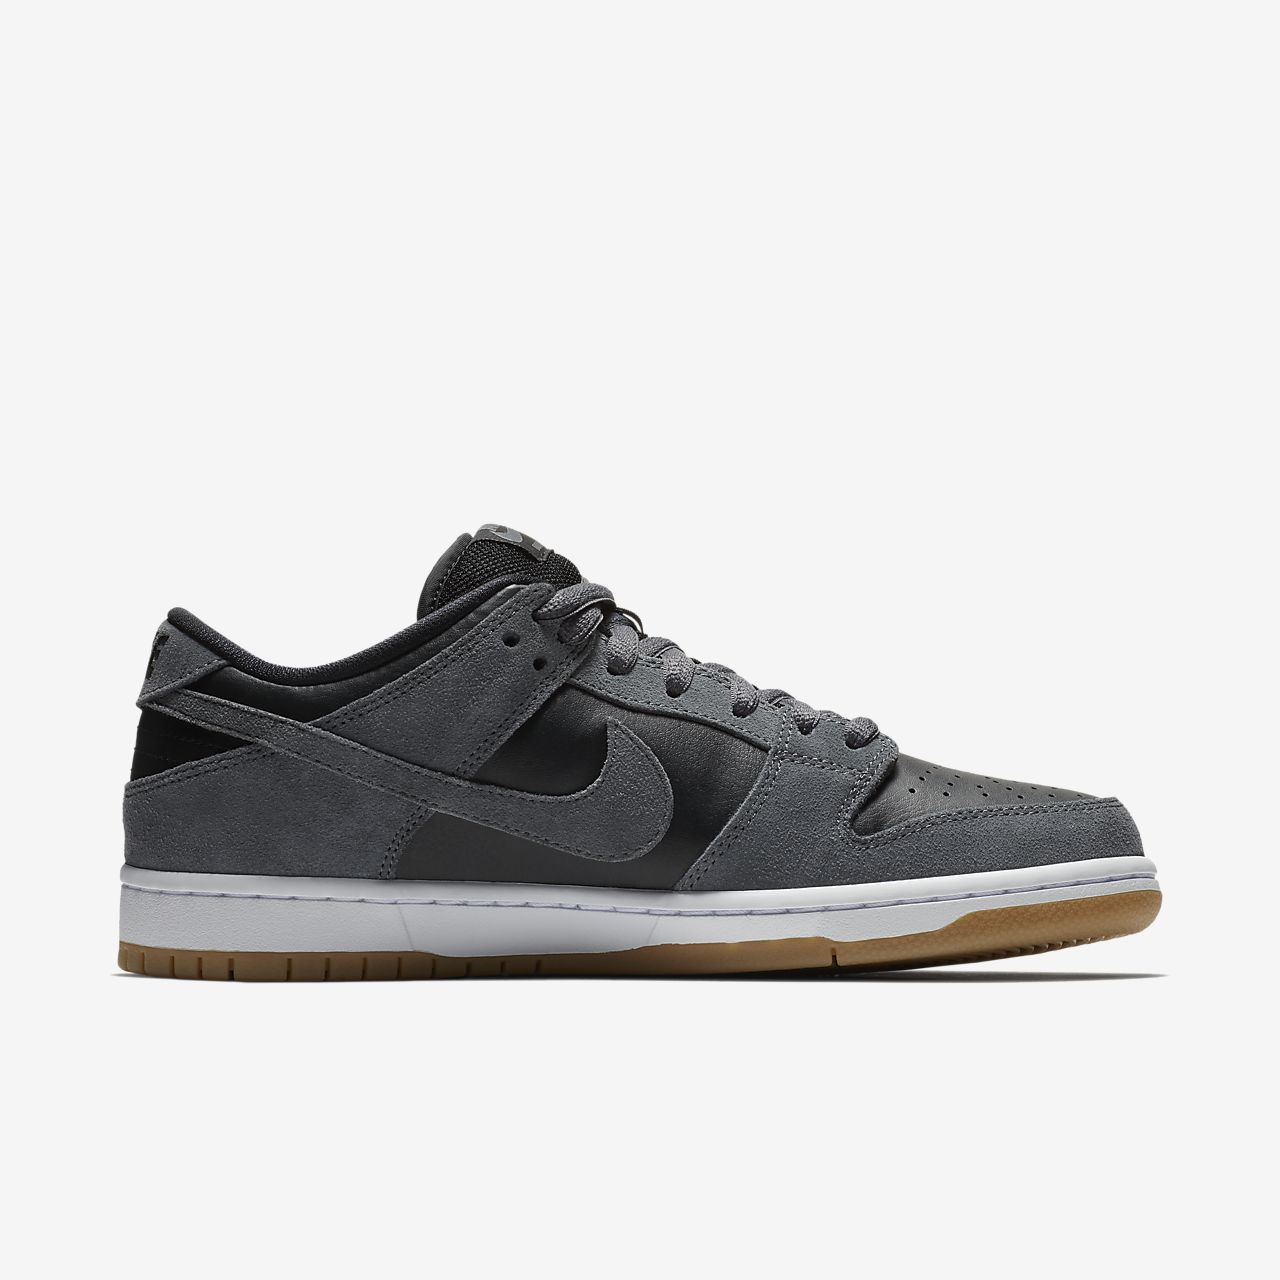 def8a1621928 Nike SB Dunk Low TRD Men s Skateboarding Shoe. Nike.com